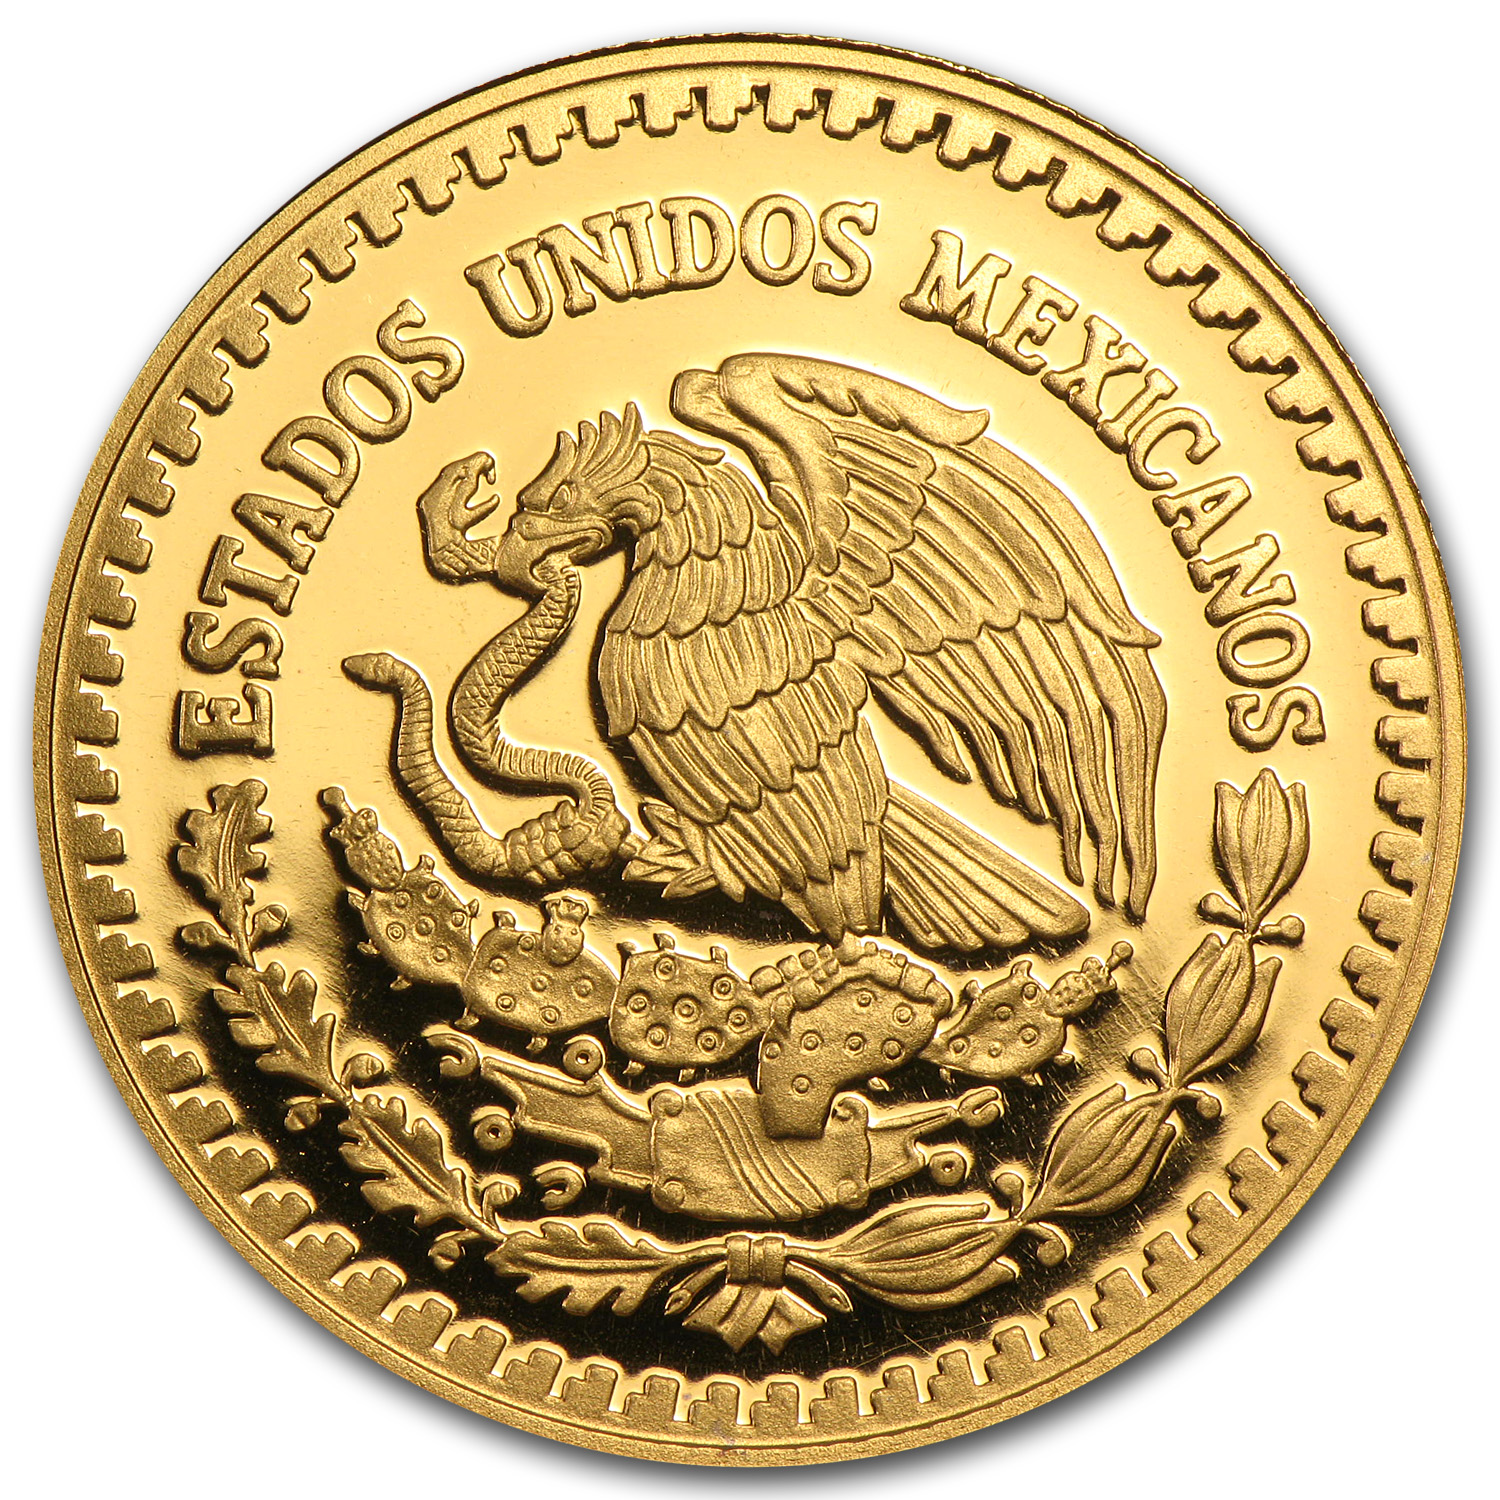 2008 1/2 oz Gold Mexican Libertad - Proof